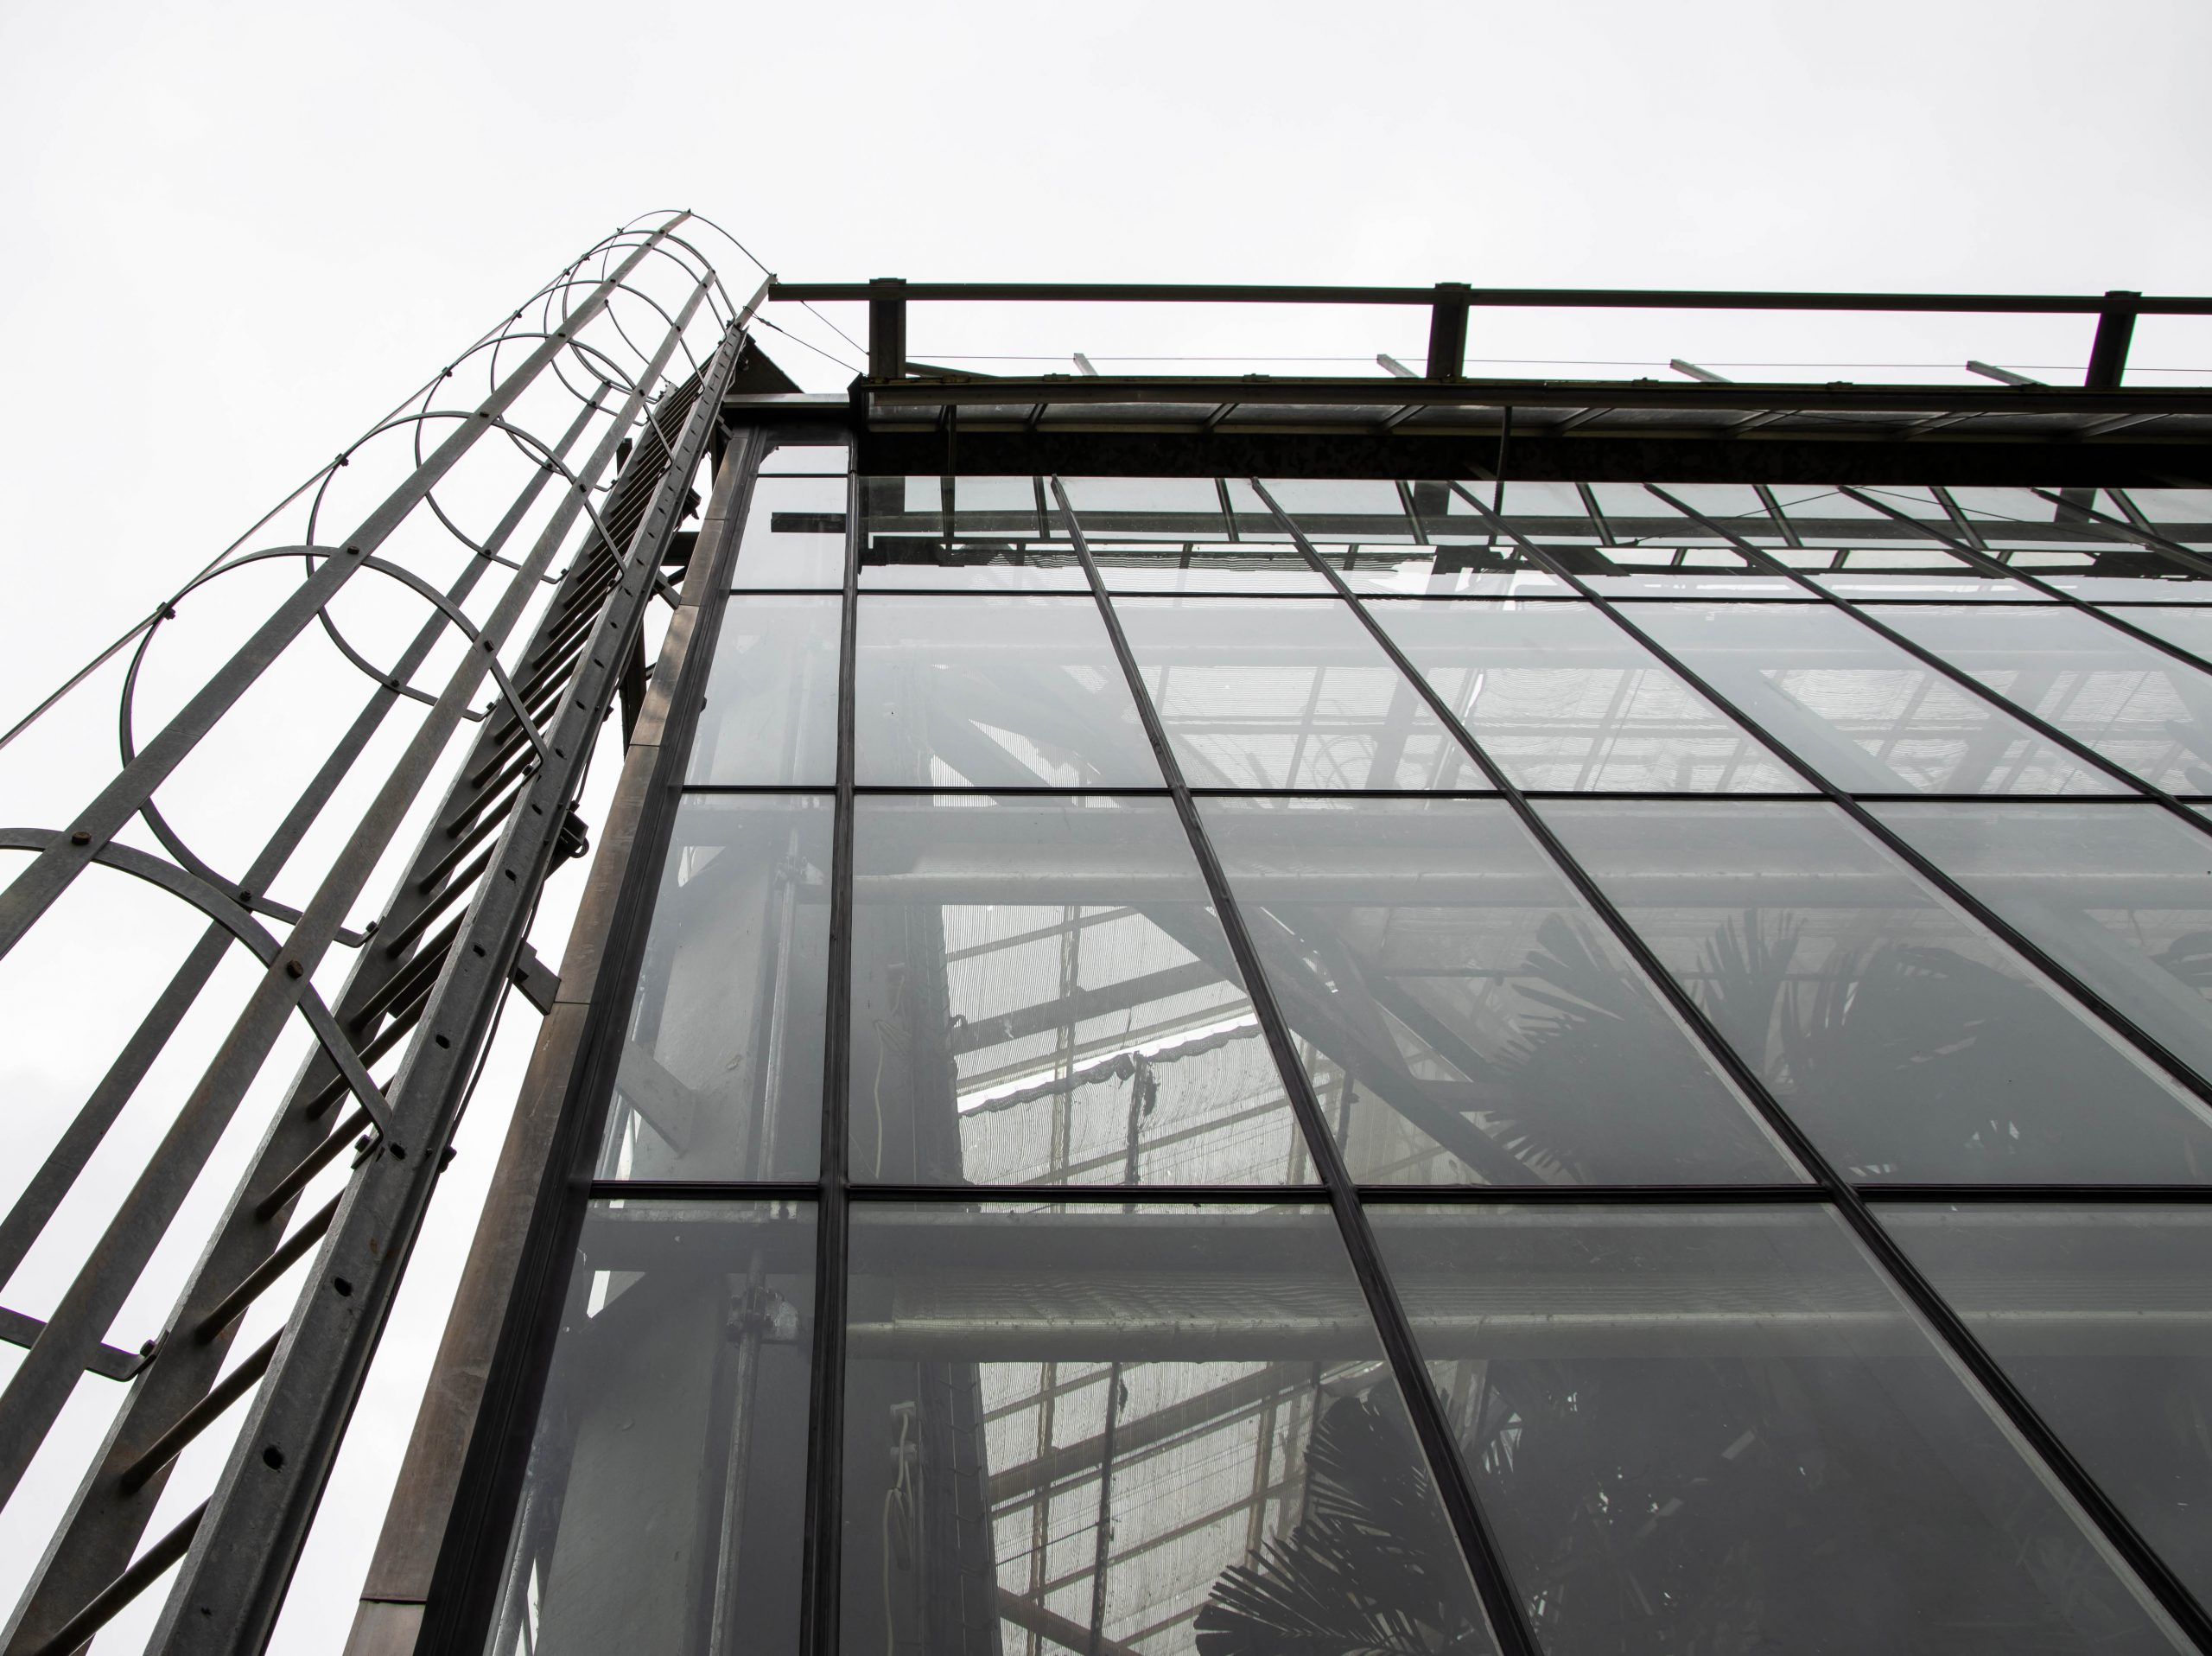 Facade,Of,A,Building,With,Glass,Wall,With,Metal,Service